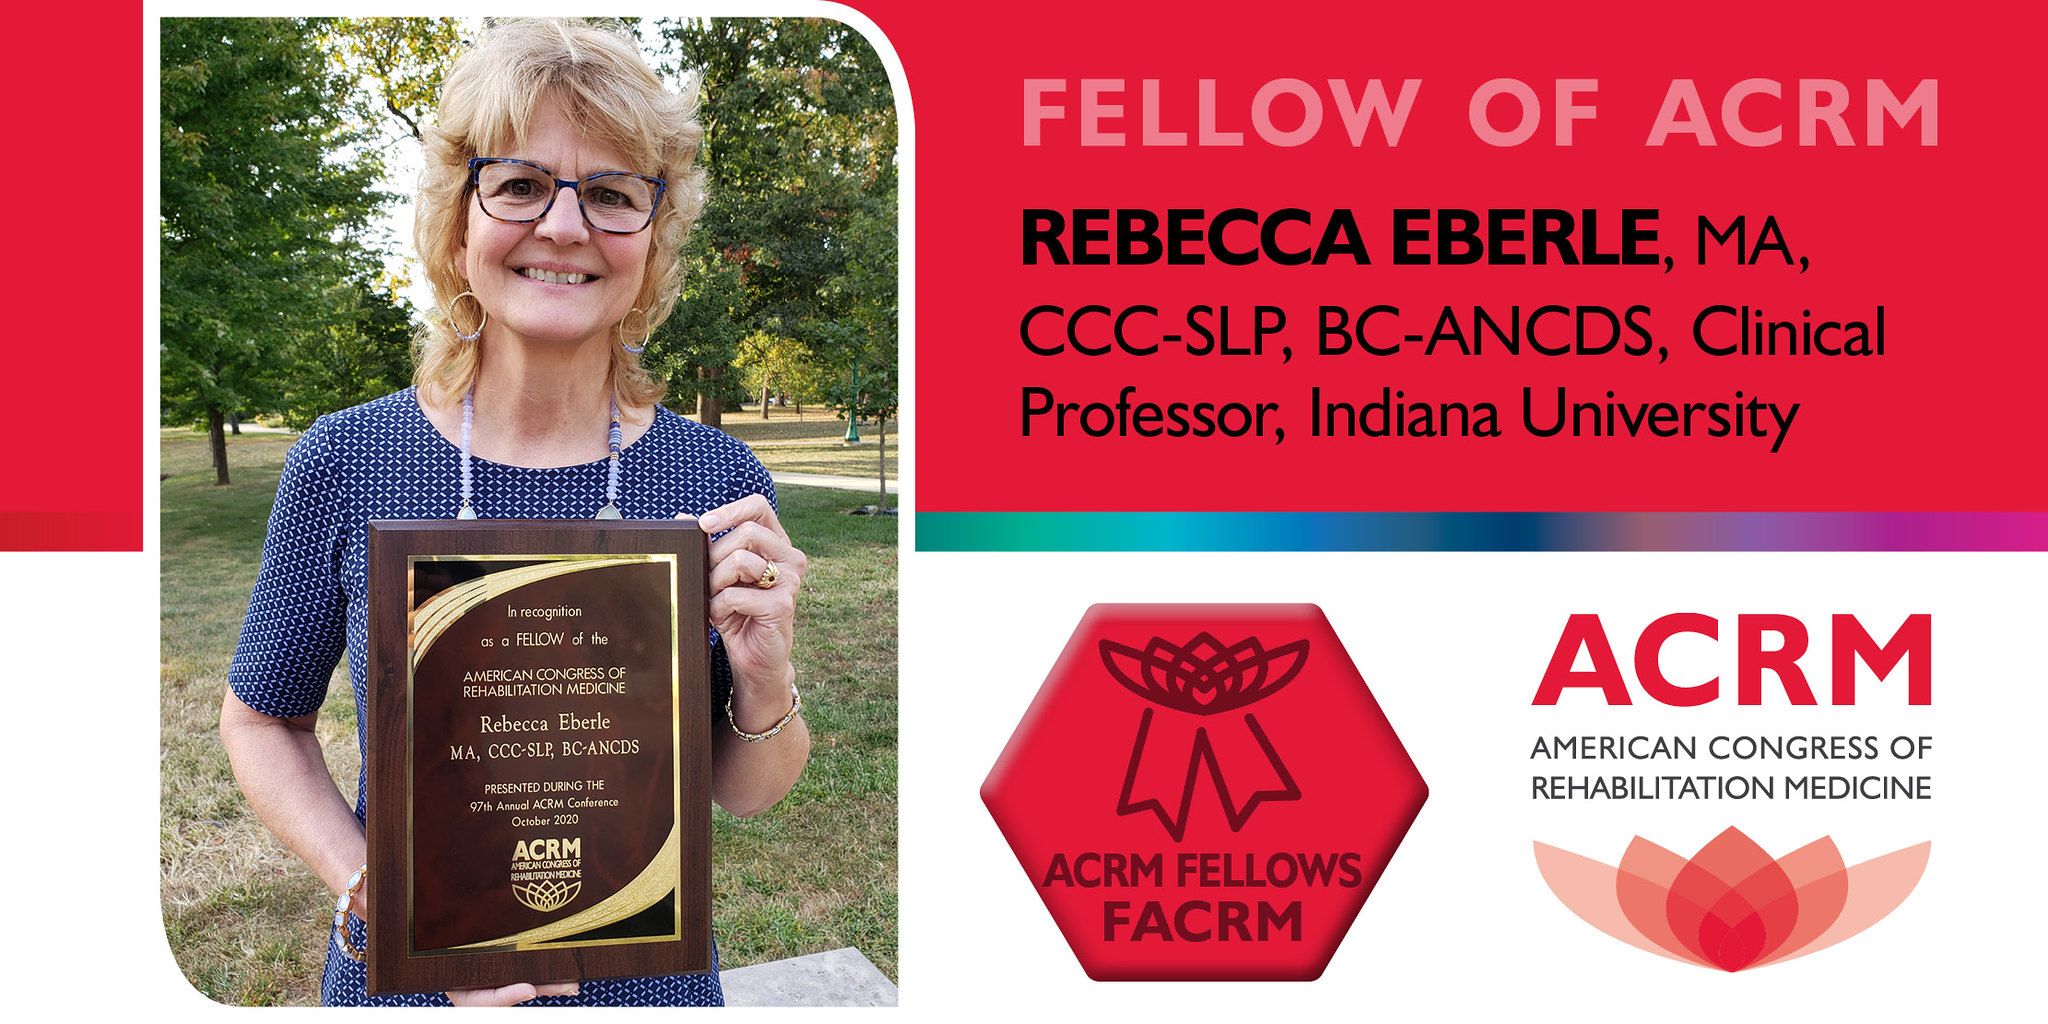 Rebecca Eberle is a 2020 Fellow of ACRM